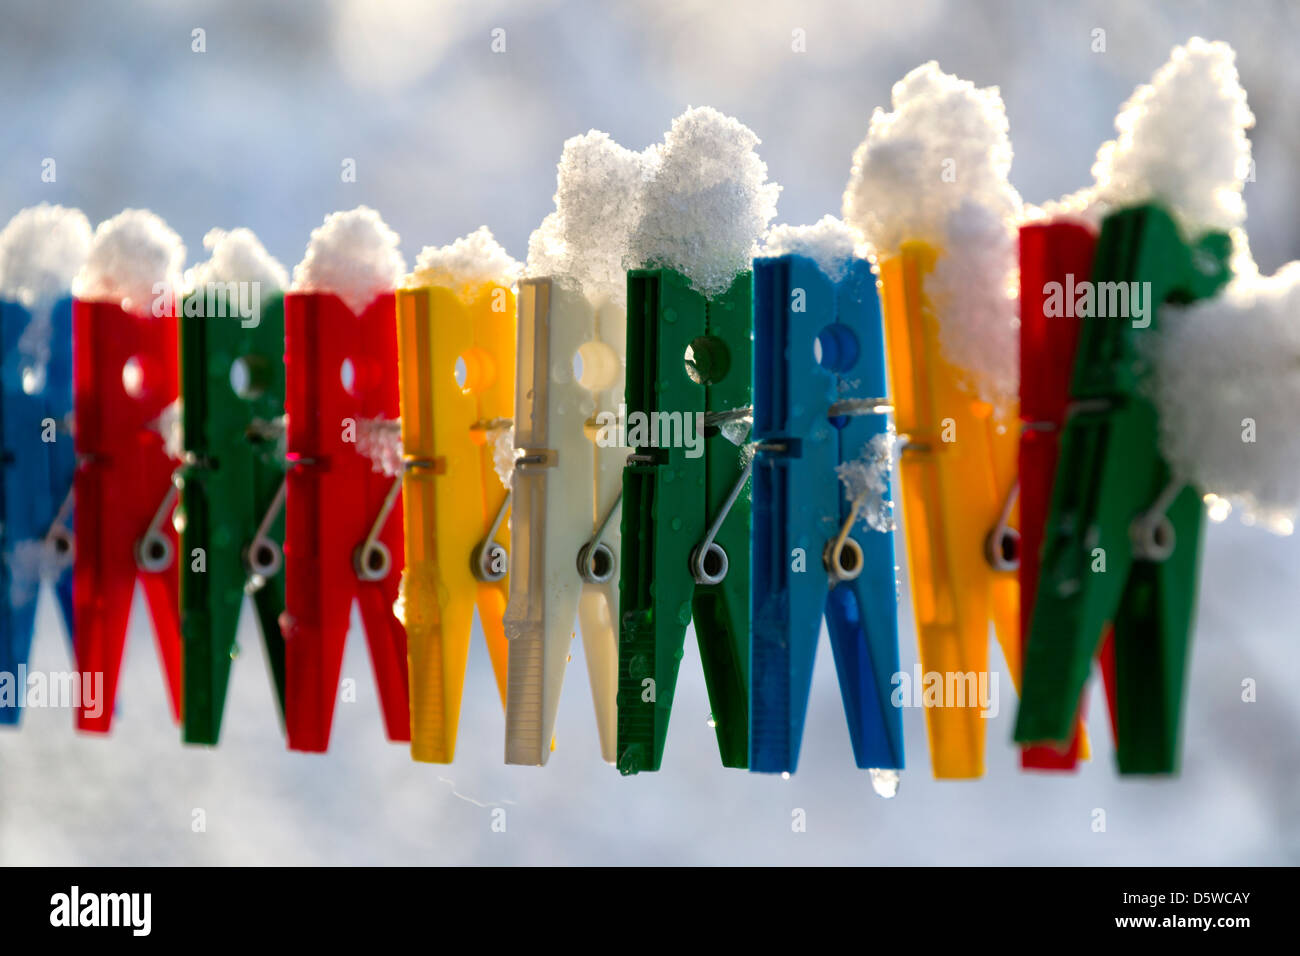 Washing line with a row of colorful pegs covered with snow queued in a row - Stock Image